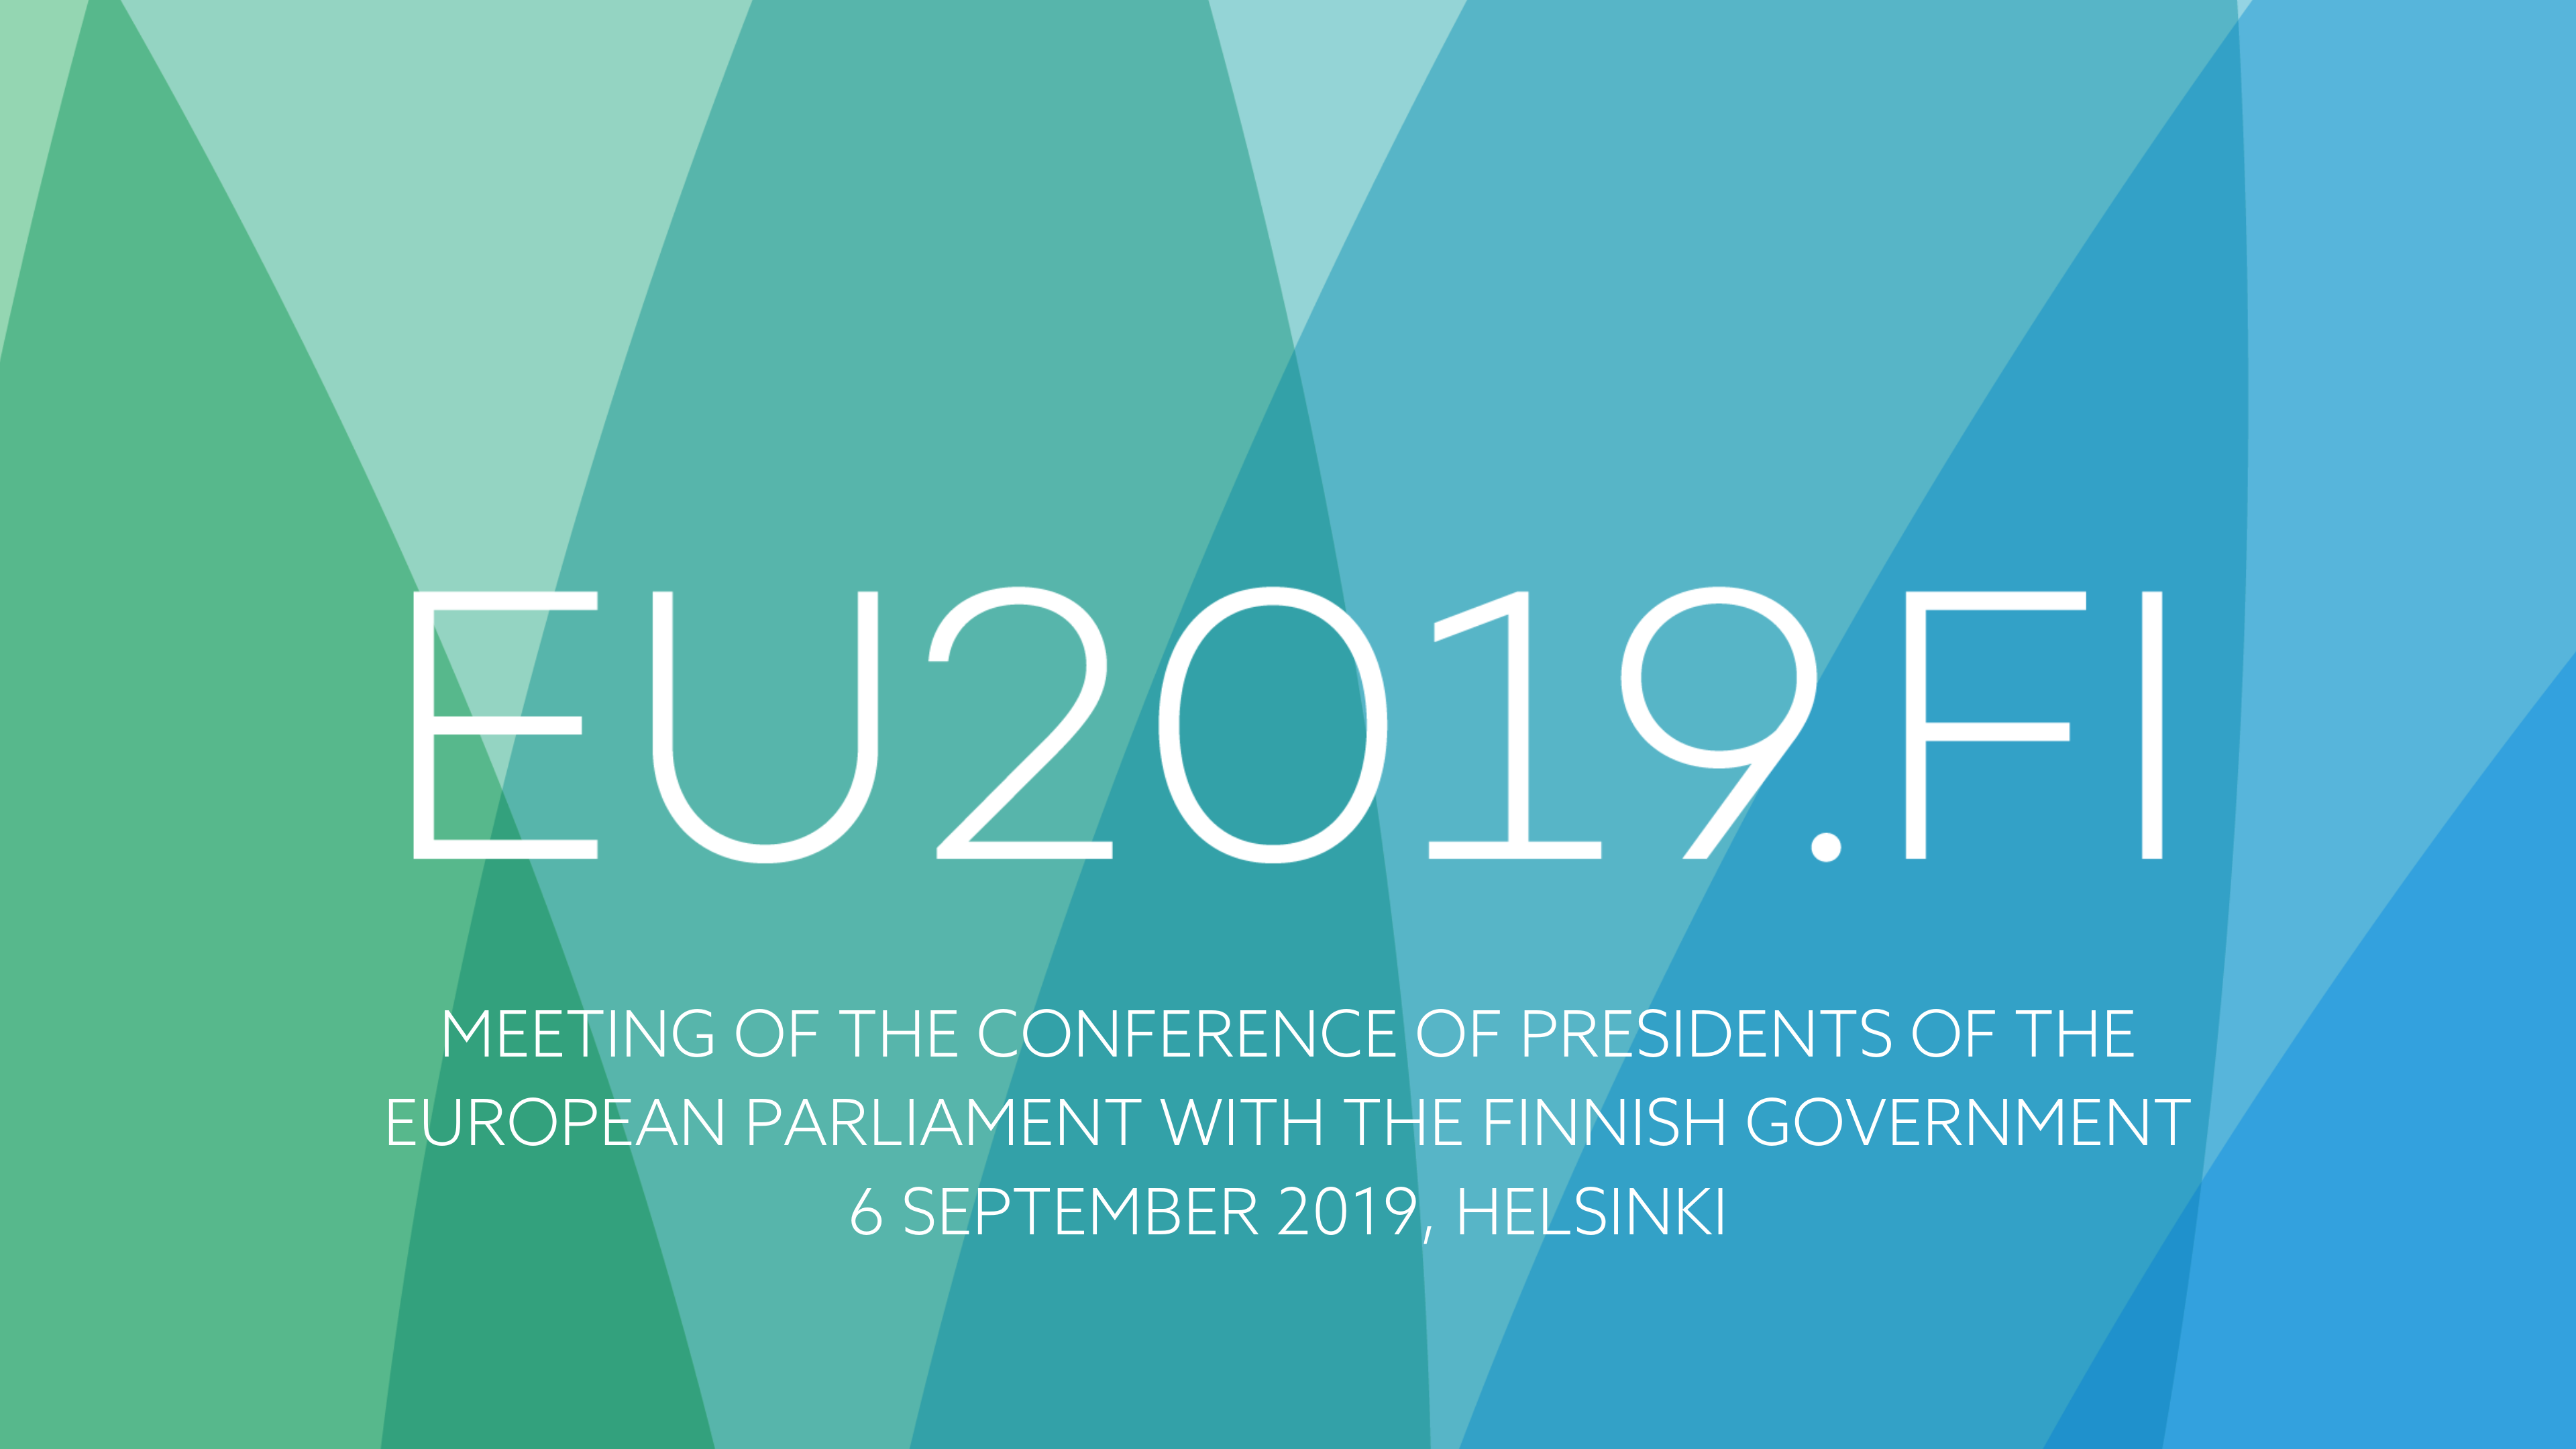 Finnish government met European Parliament's President and